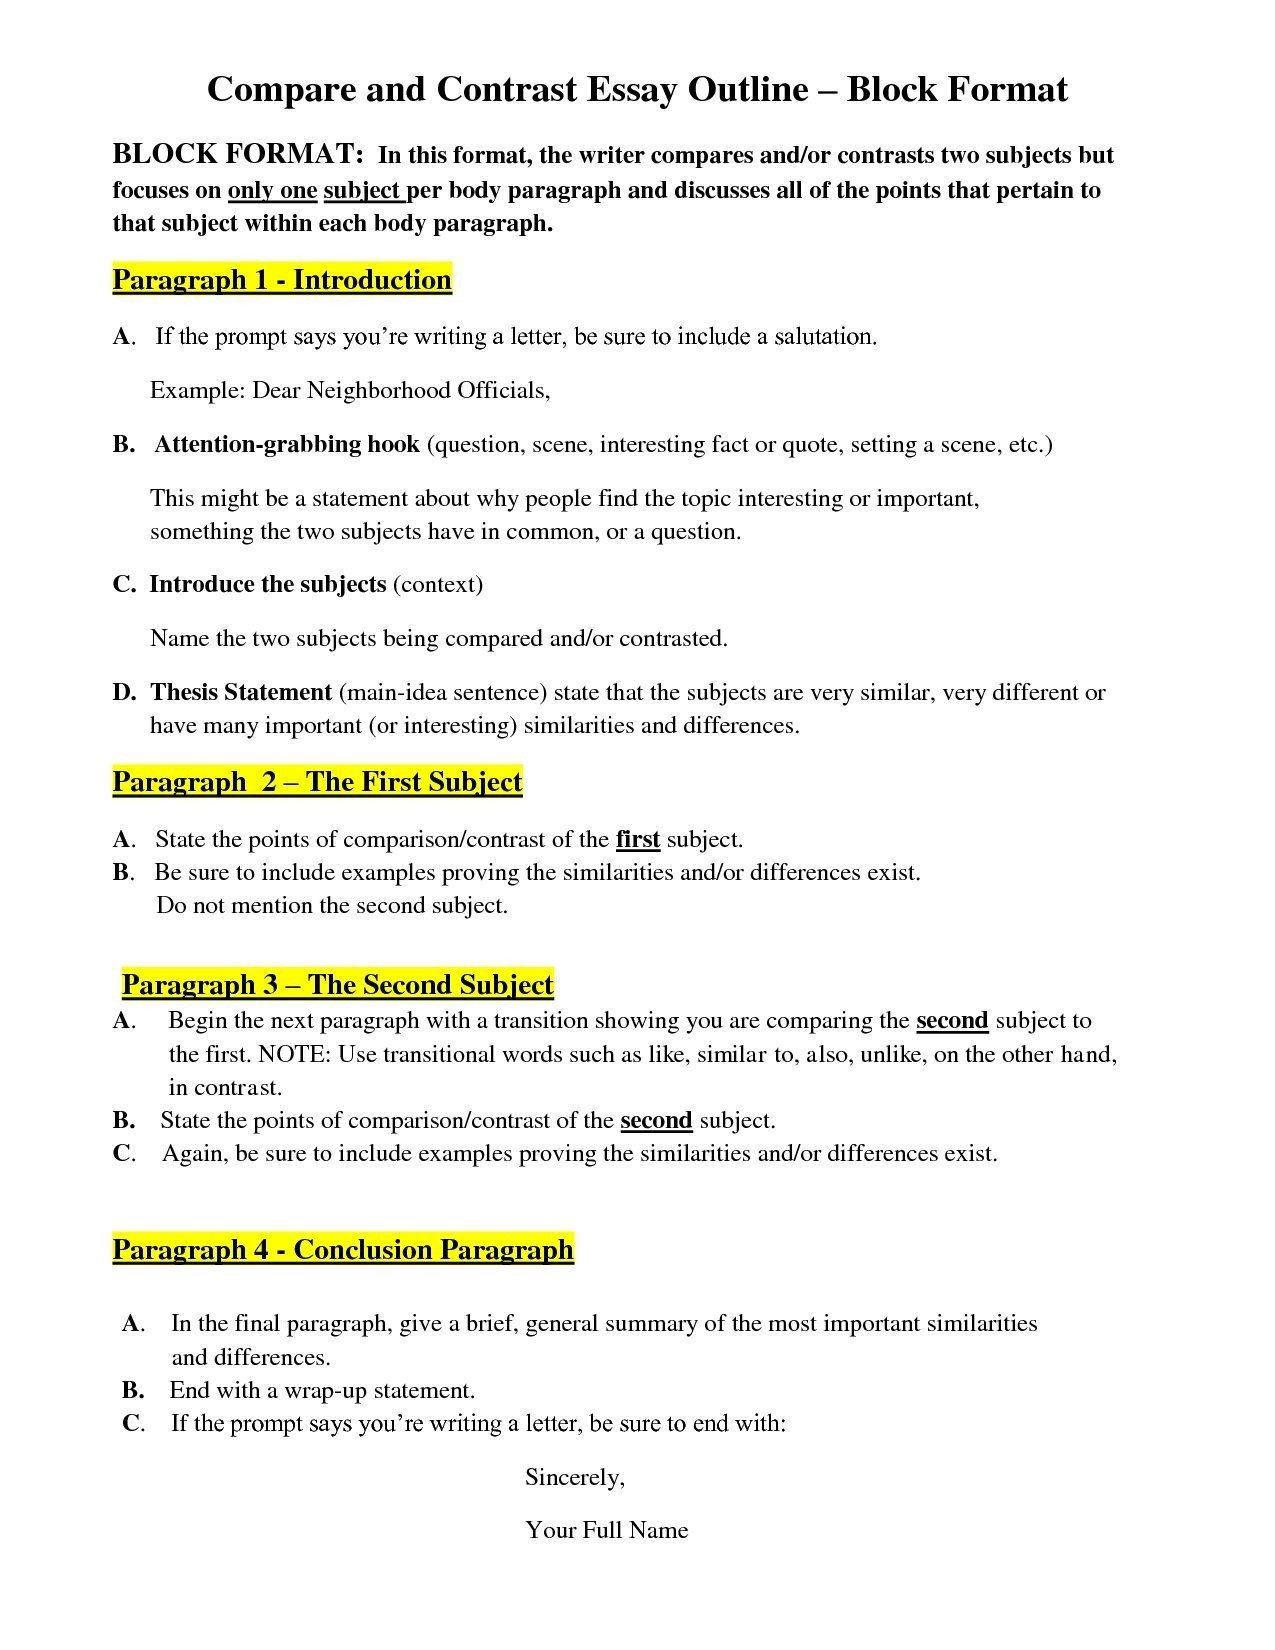 014 Essay Examplempare Andntrastmparison Best Examples Of Scenario In 6th Grade An Goo 3rd Food 5th Middle School Block Format Pdf High 4th Vs Striking Compare And Contrast Example For College Outline Full